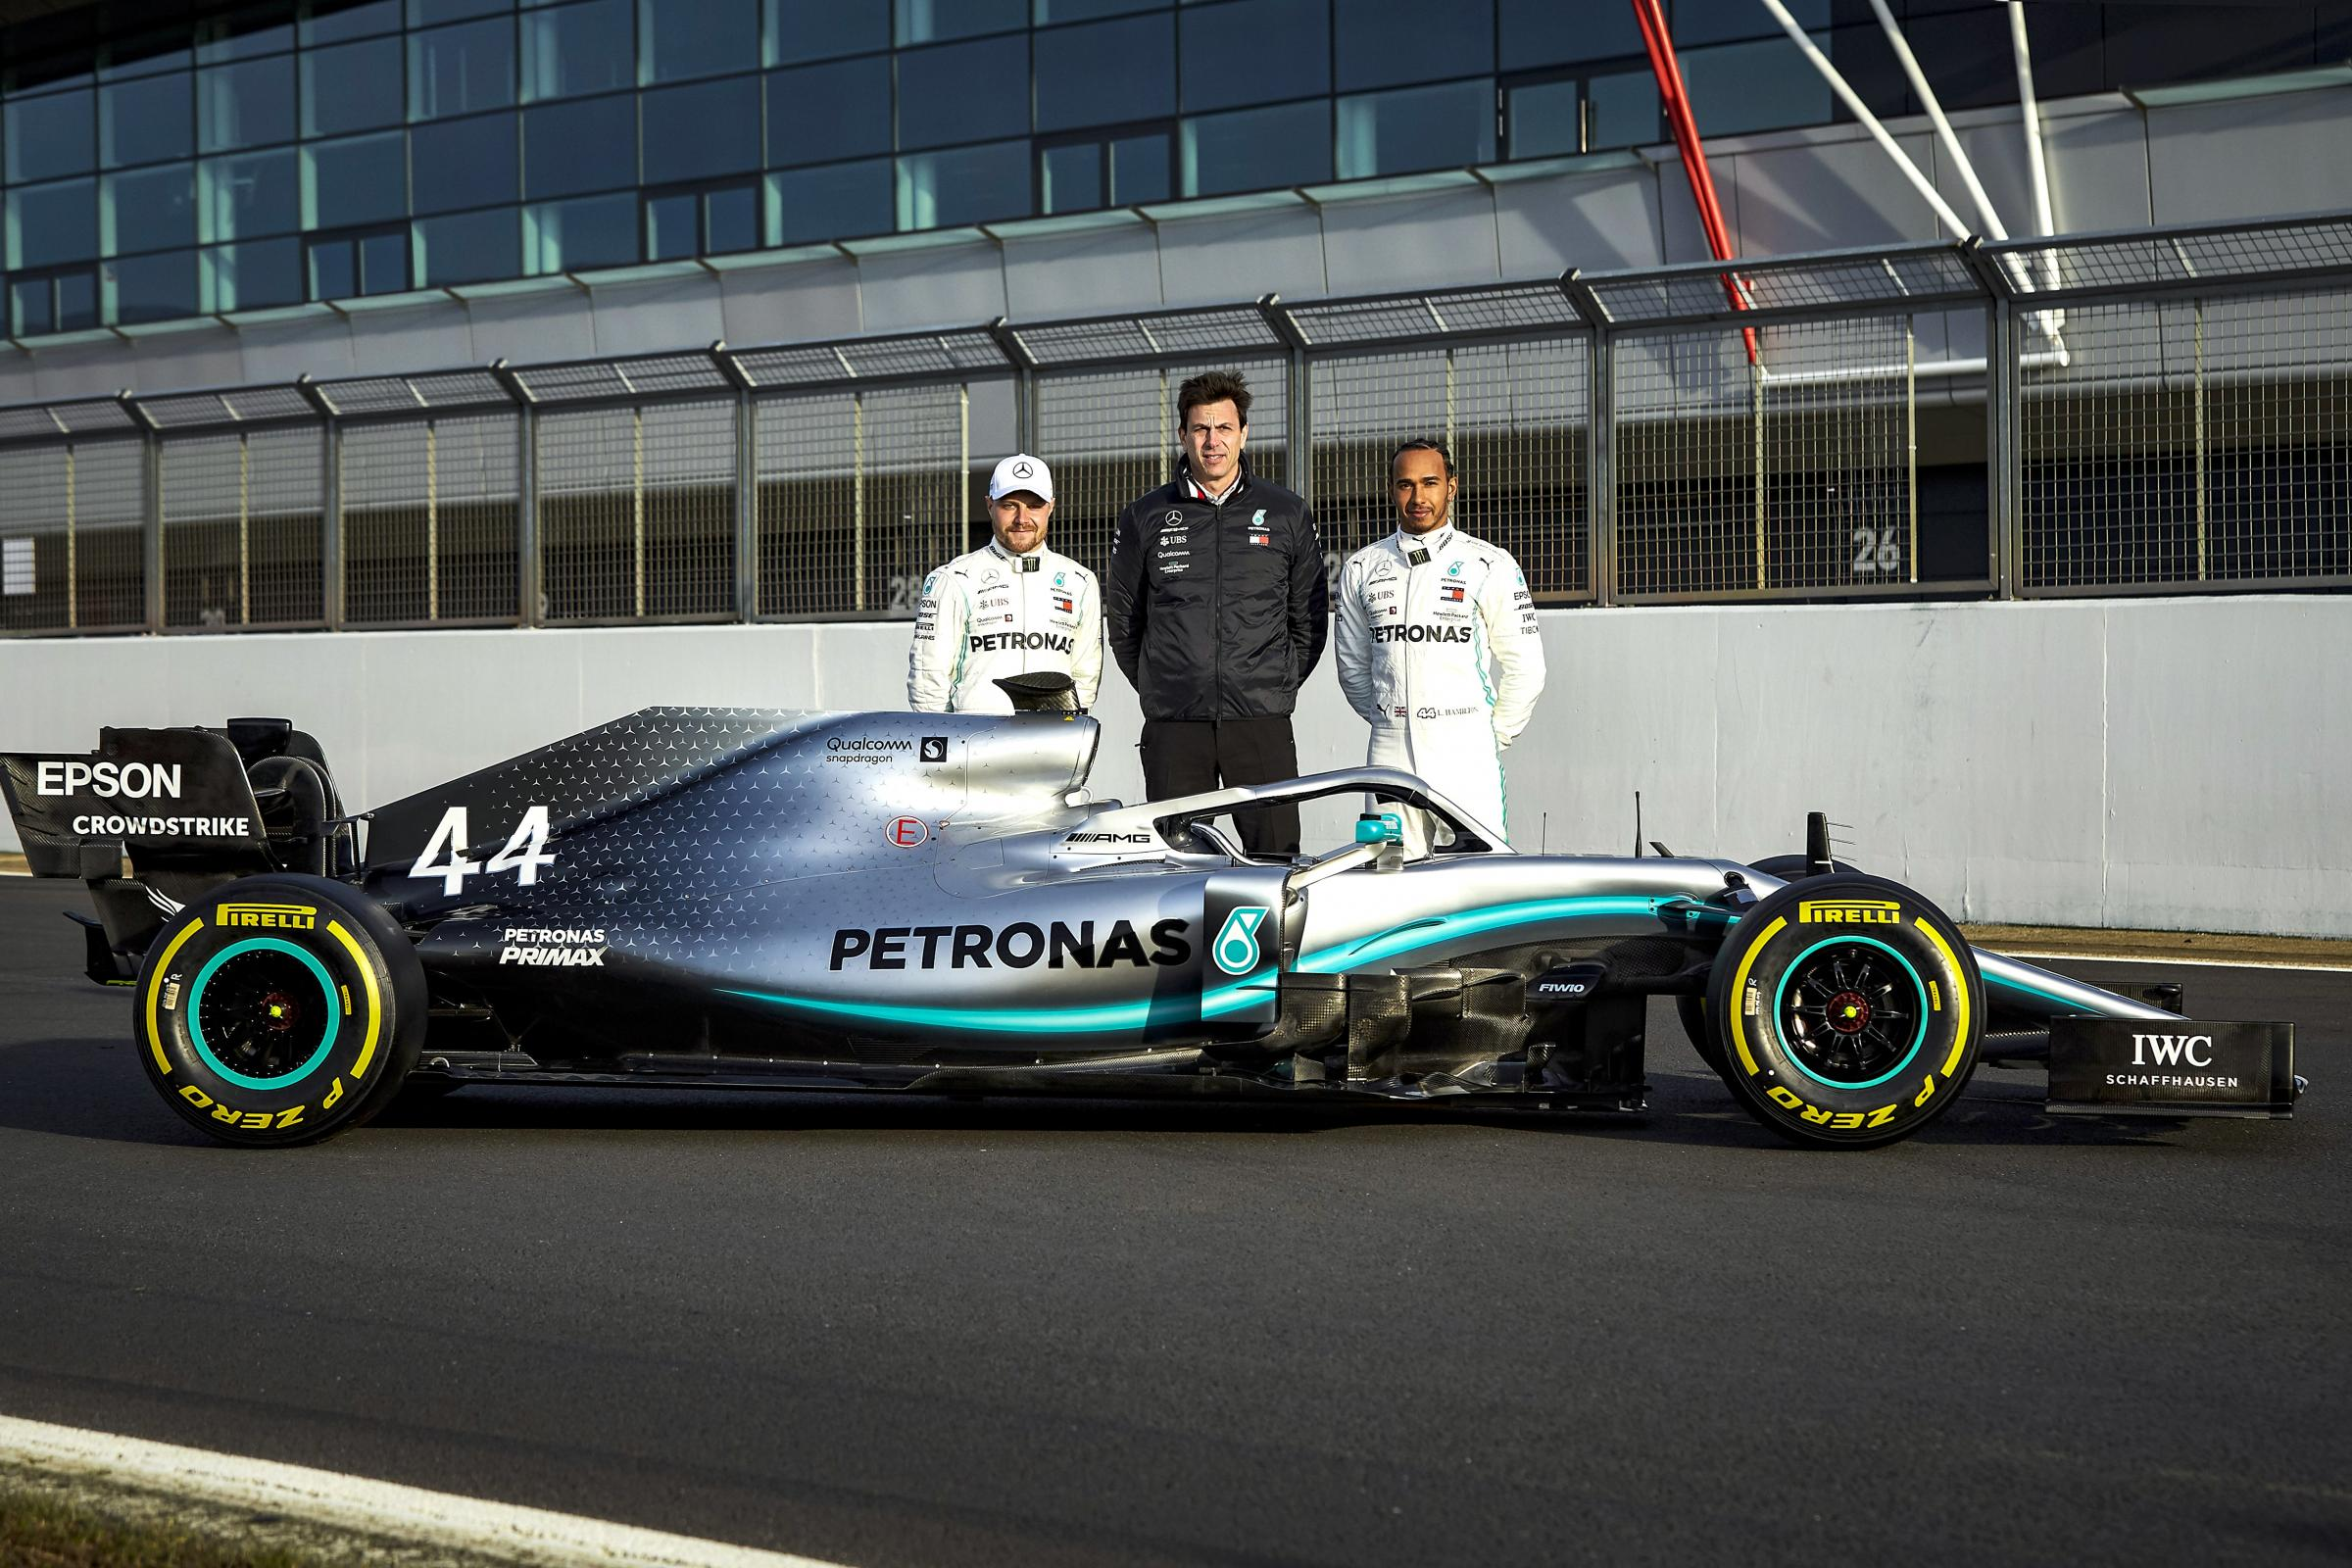 Lewis Hamilton and Valtteri Bottas are paired together again